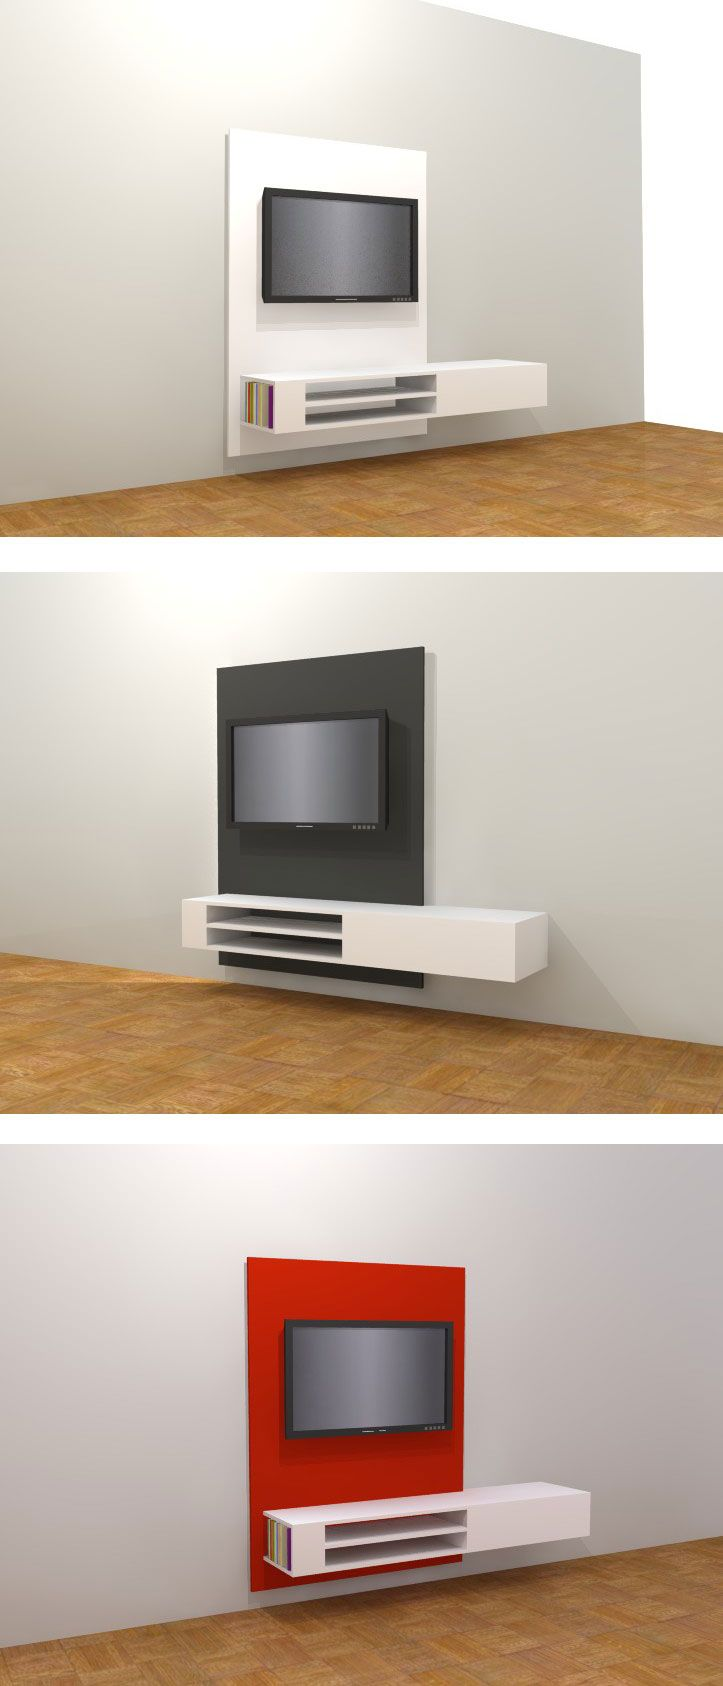 Best Ideas About Modern Tv Stands On Pinterest Modern Tv - Home tv stand furniture designs